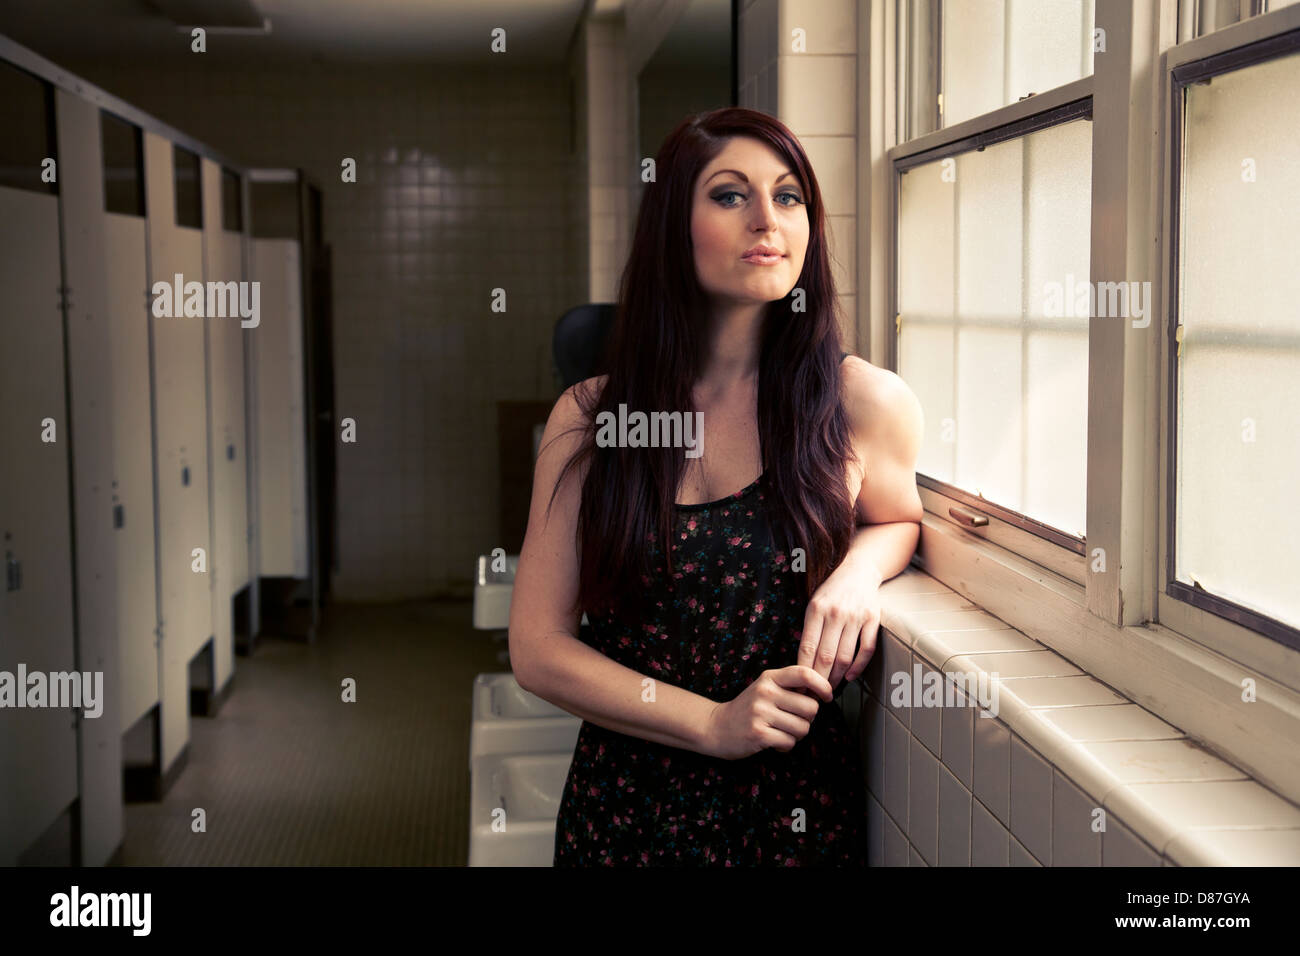 Photos of girl without any cloth in bathroom - Woman Standing Next To Window In Public Bathroom Stock Image